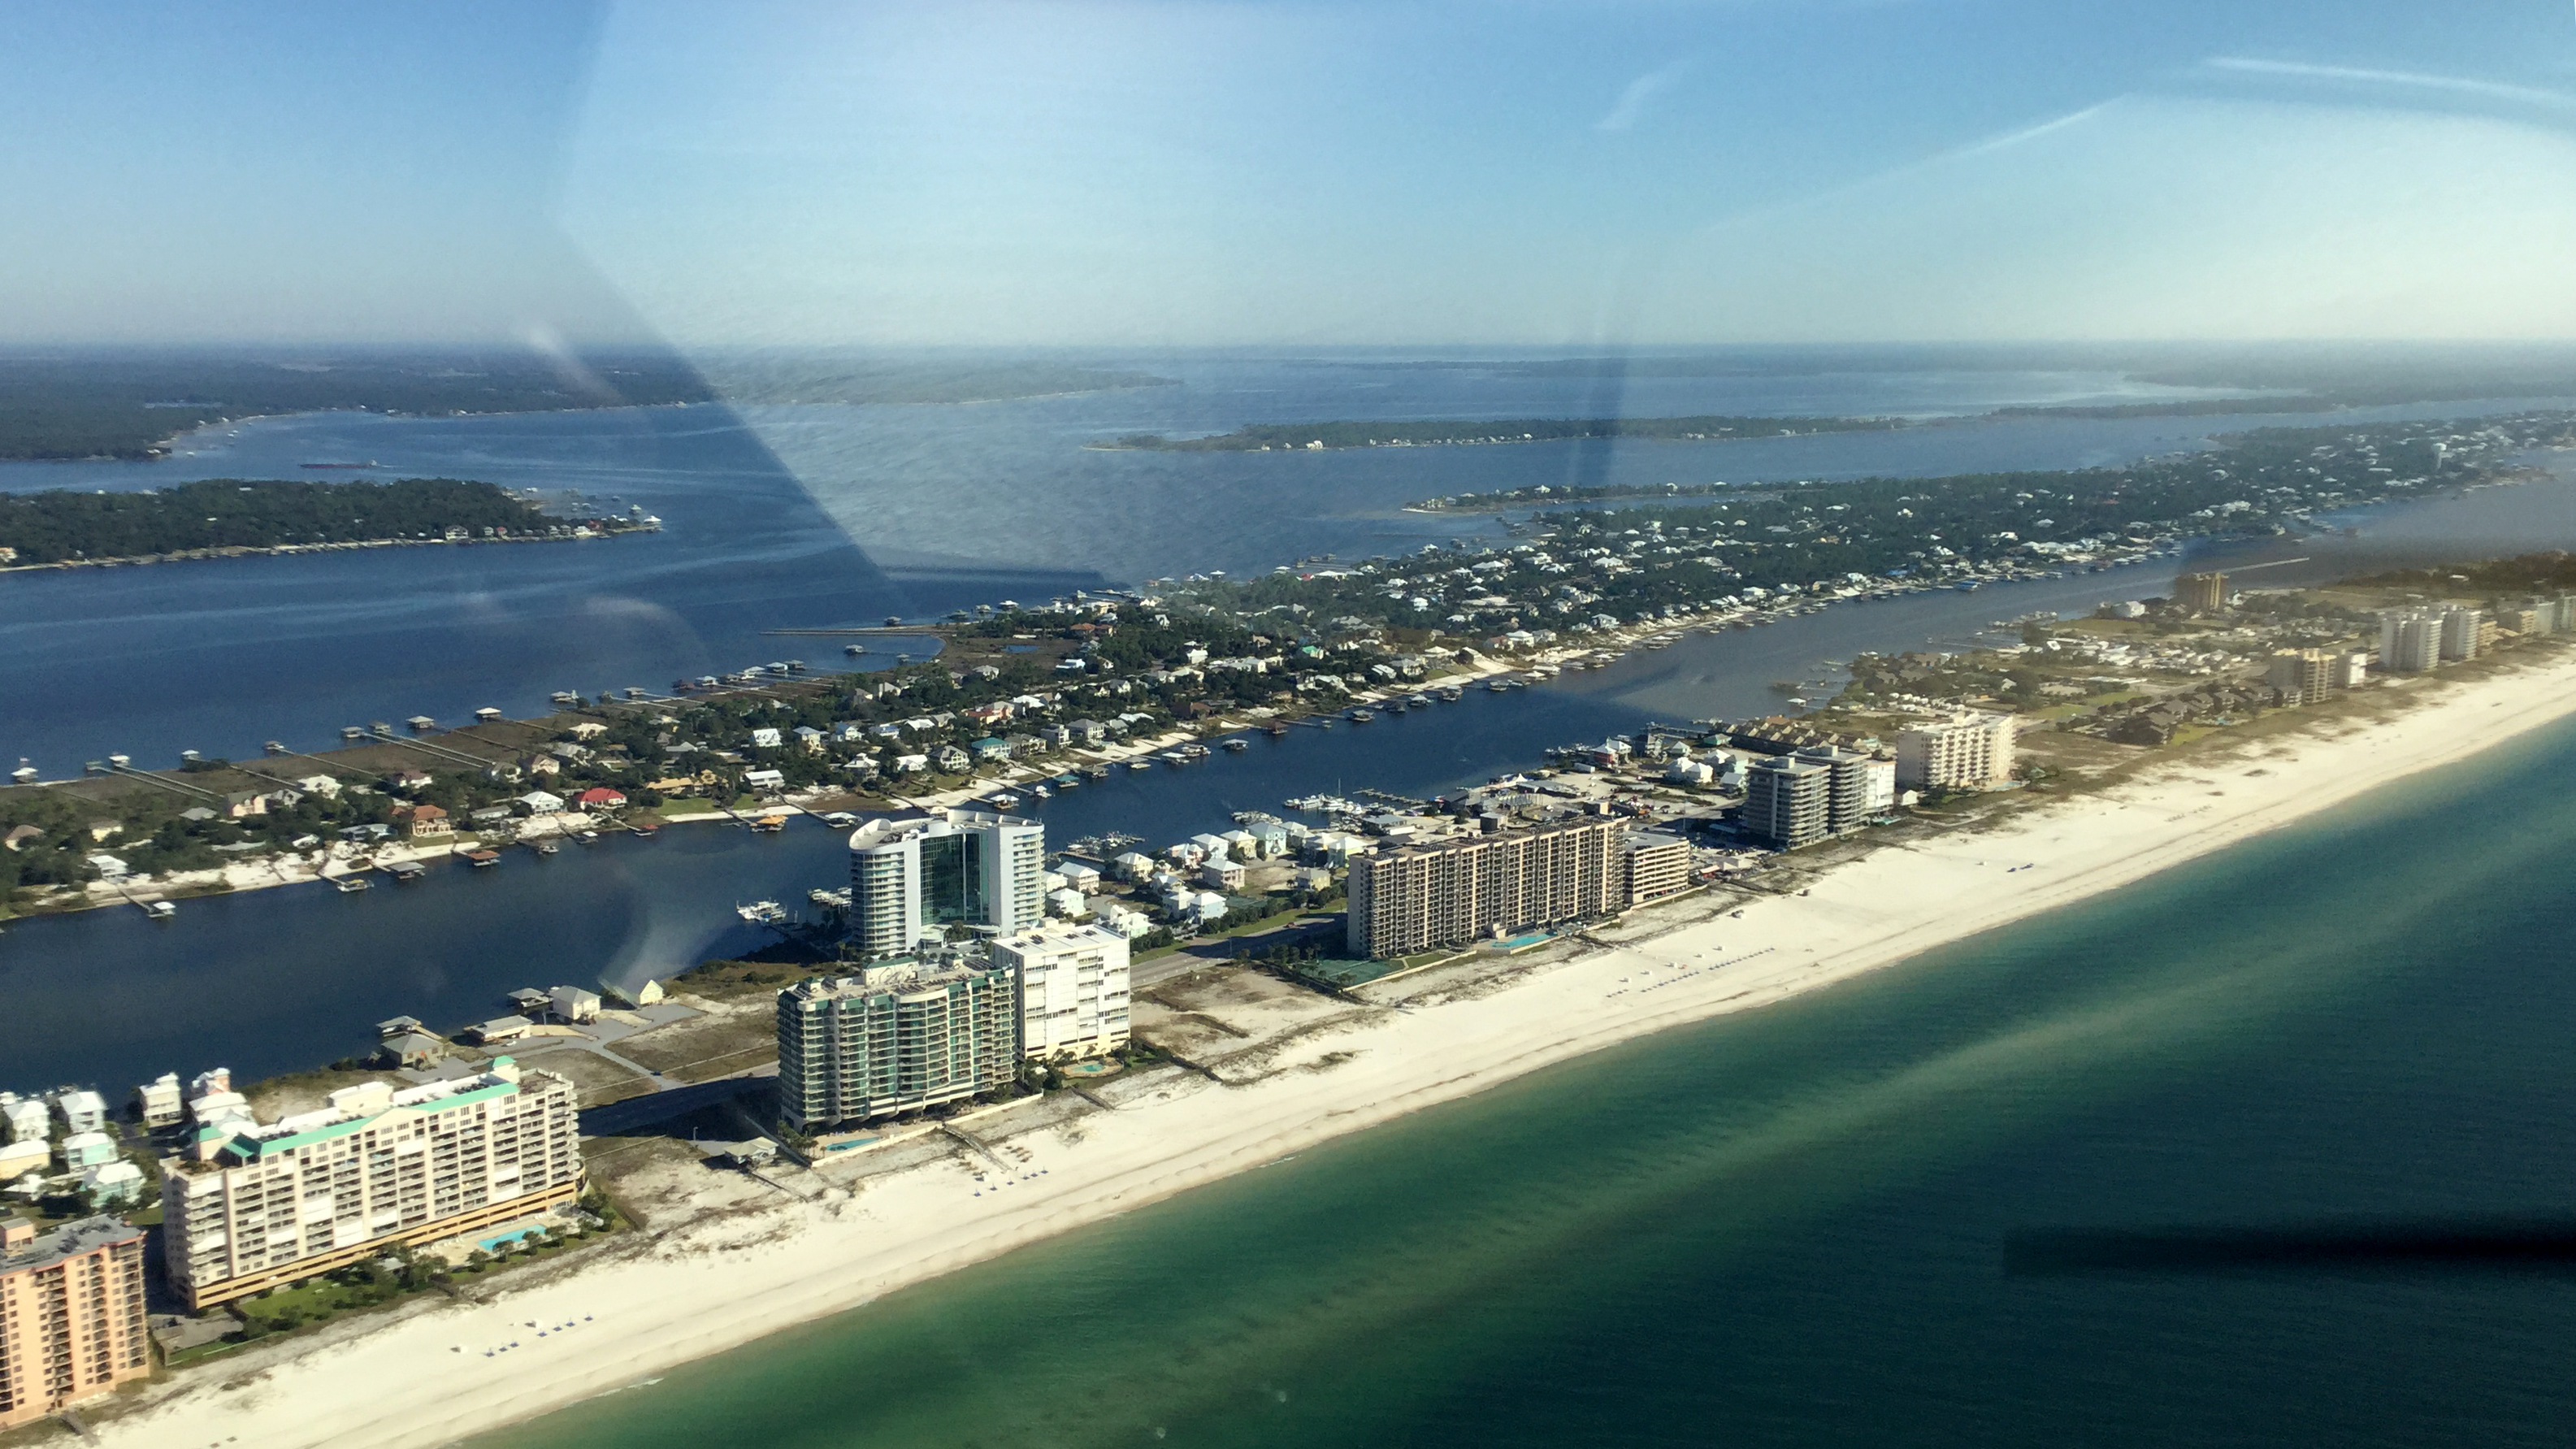 Flying the AOPA Sweepstakes Super Cub along the Gulf Coast at 800 feet provides views of the high-rise condos along the beachfront as well as homes on the Gulf Intracoastal Waterway.